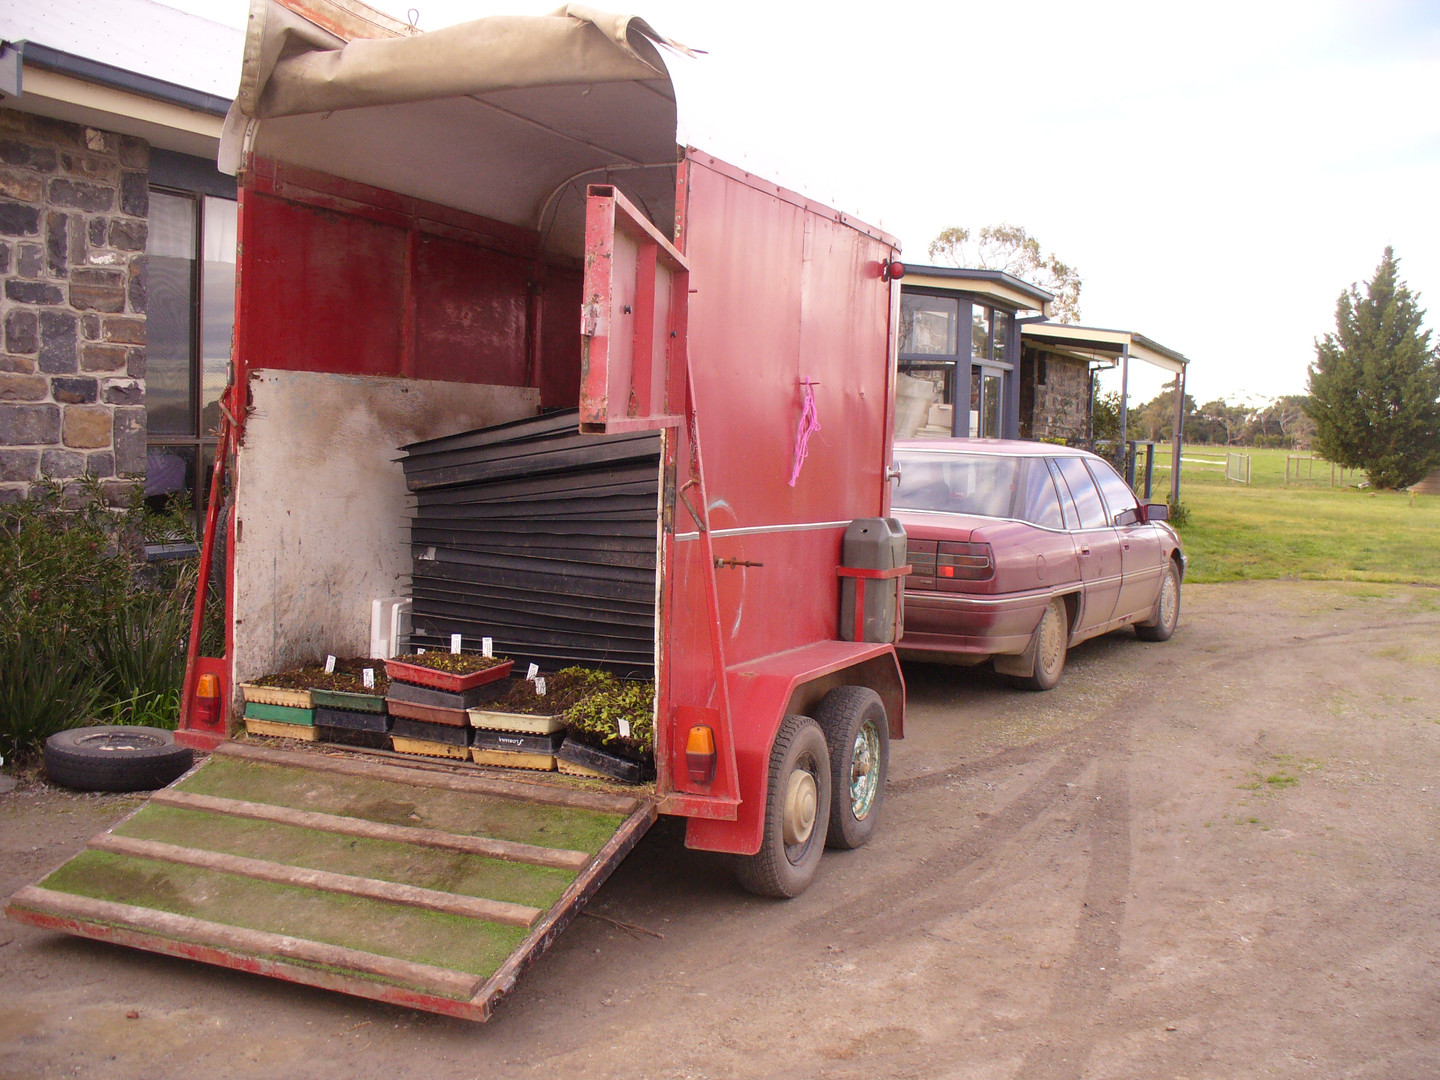 Our entire nursery and stock was moved by horsefloat after horsefloat load.